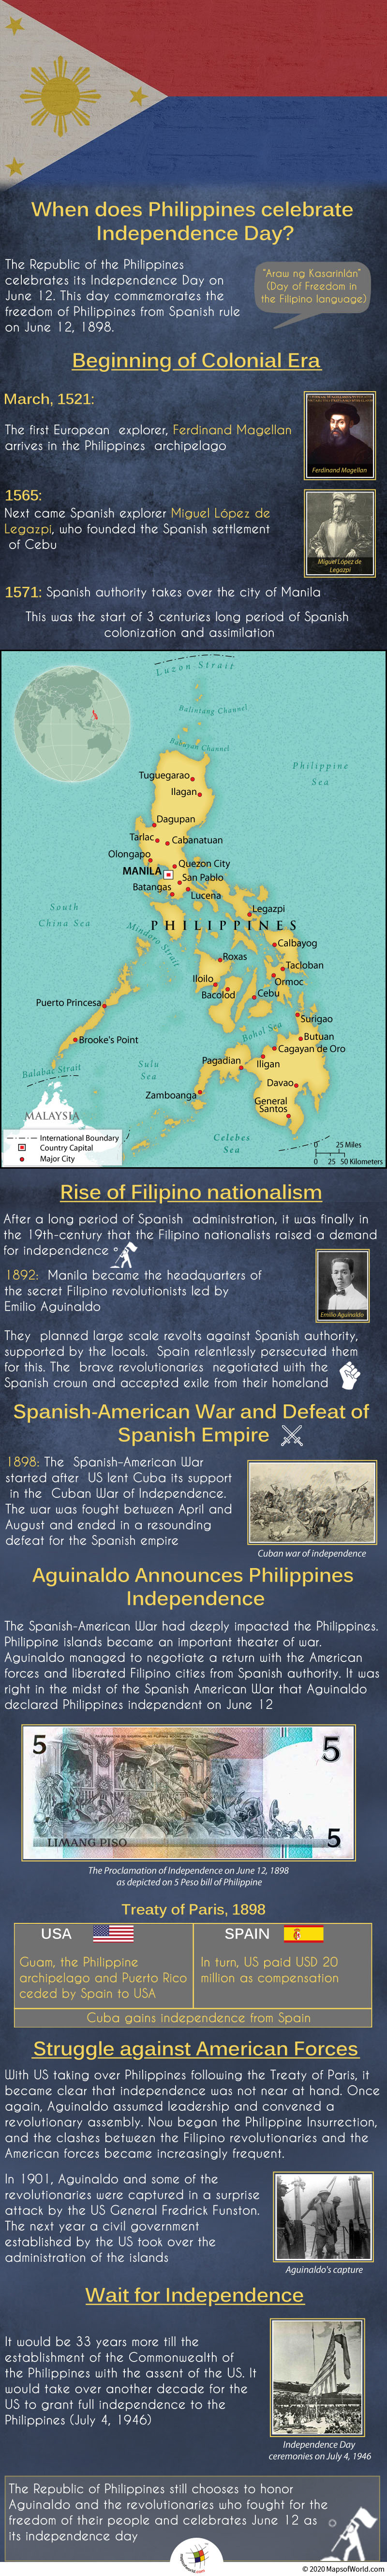 Infographic - When Does Philippines Celebrate Independence Day?